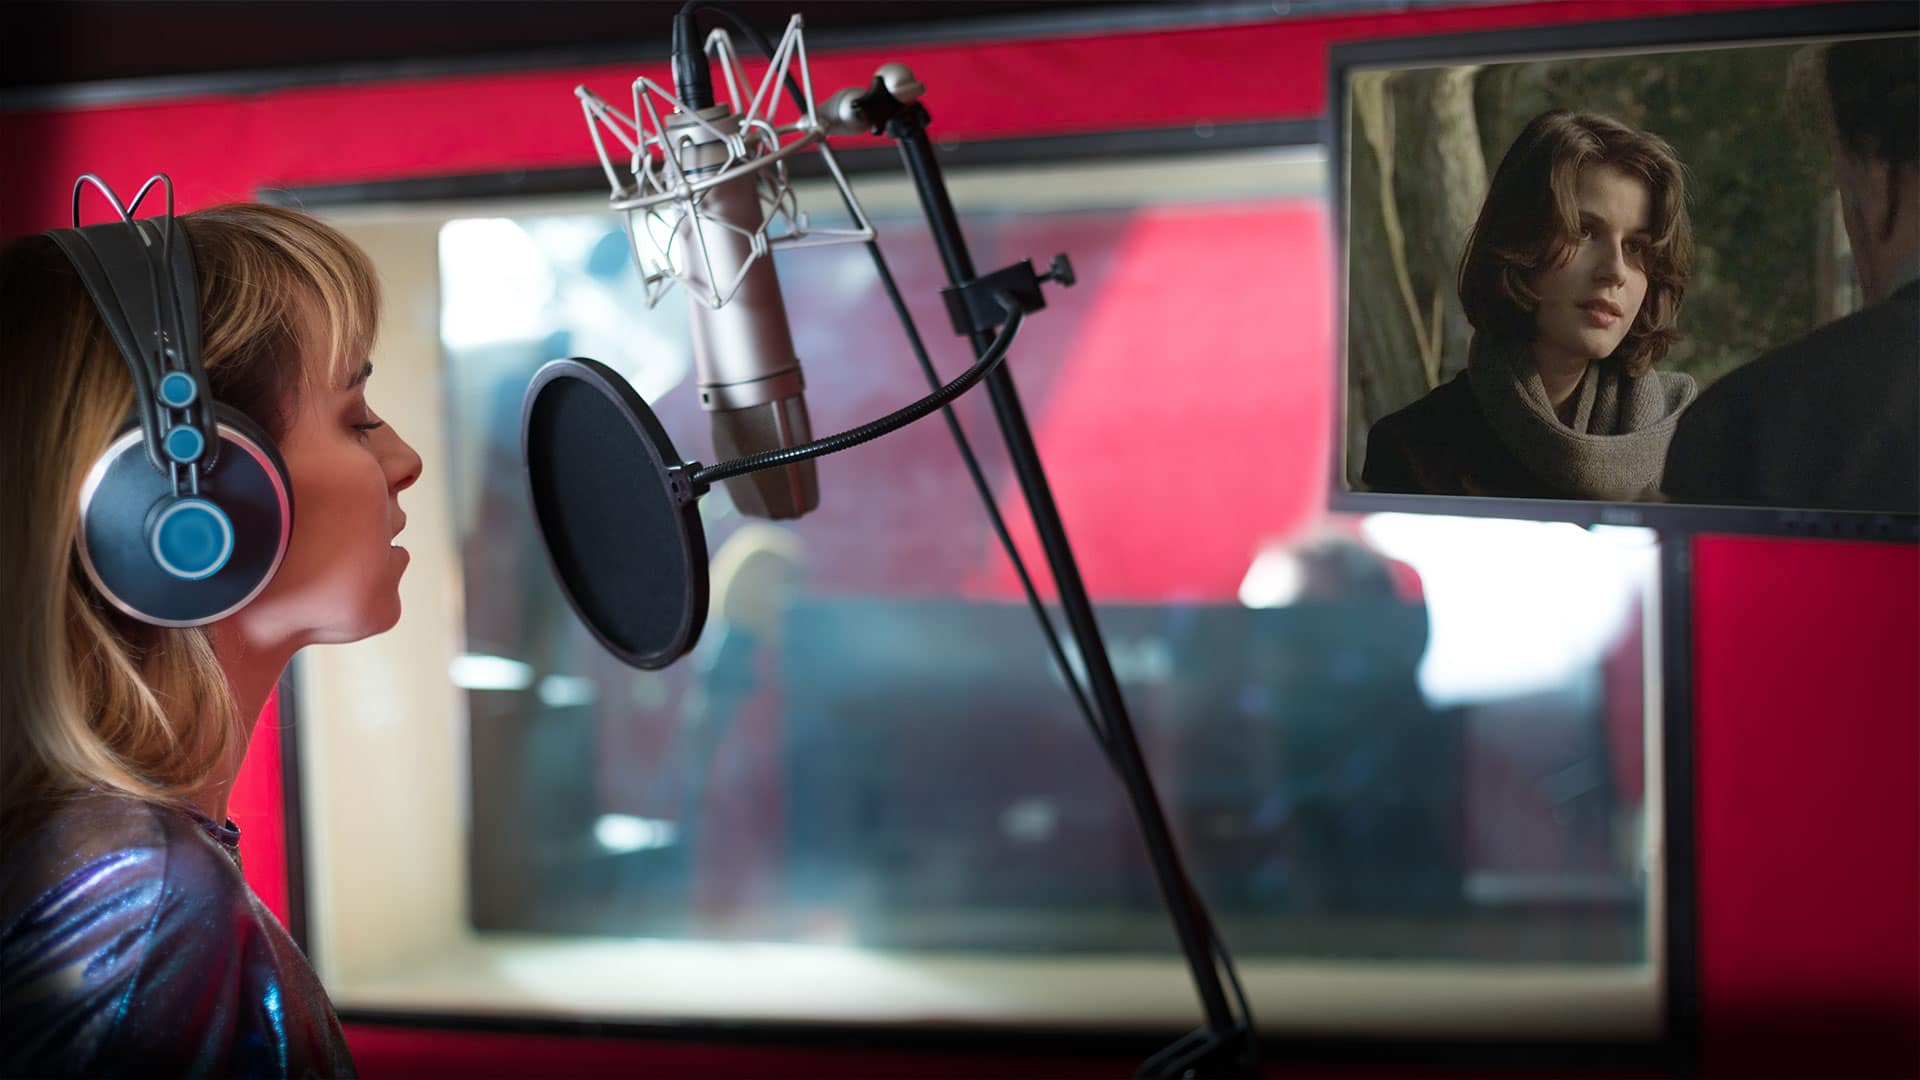 Travel the world with CIT Voice over and feel connected to our international network of talented voice actors.